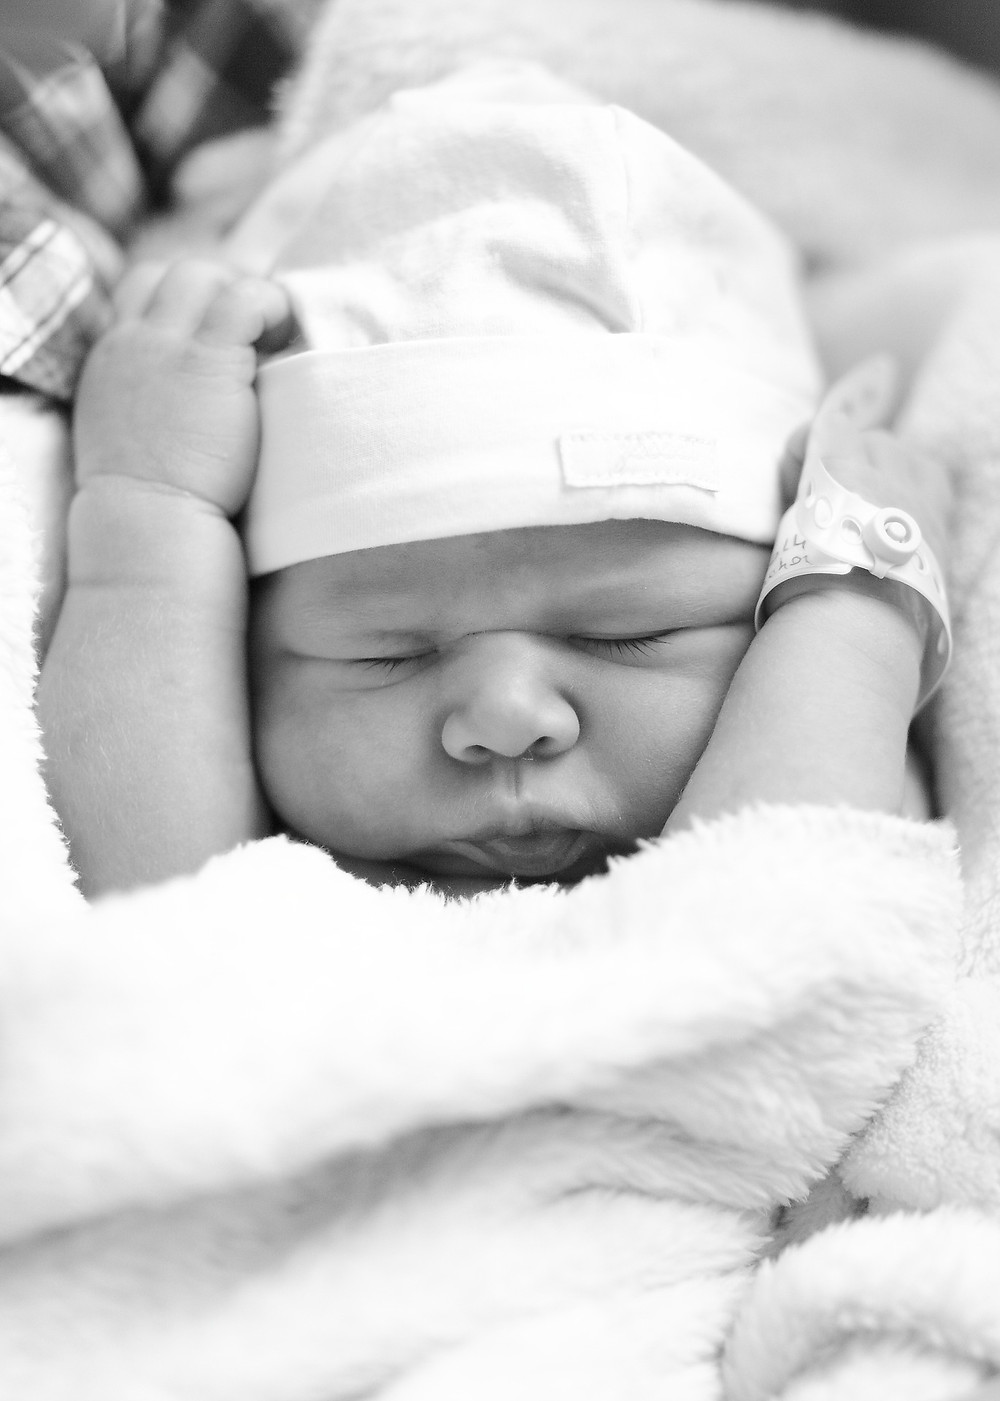 newborn baby wrapped up with hospital ID tag on wrist